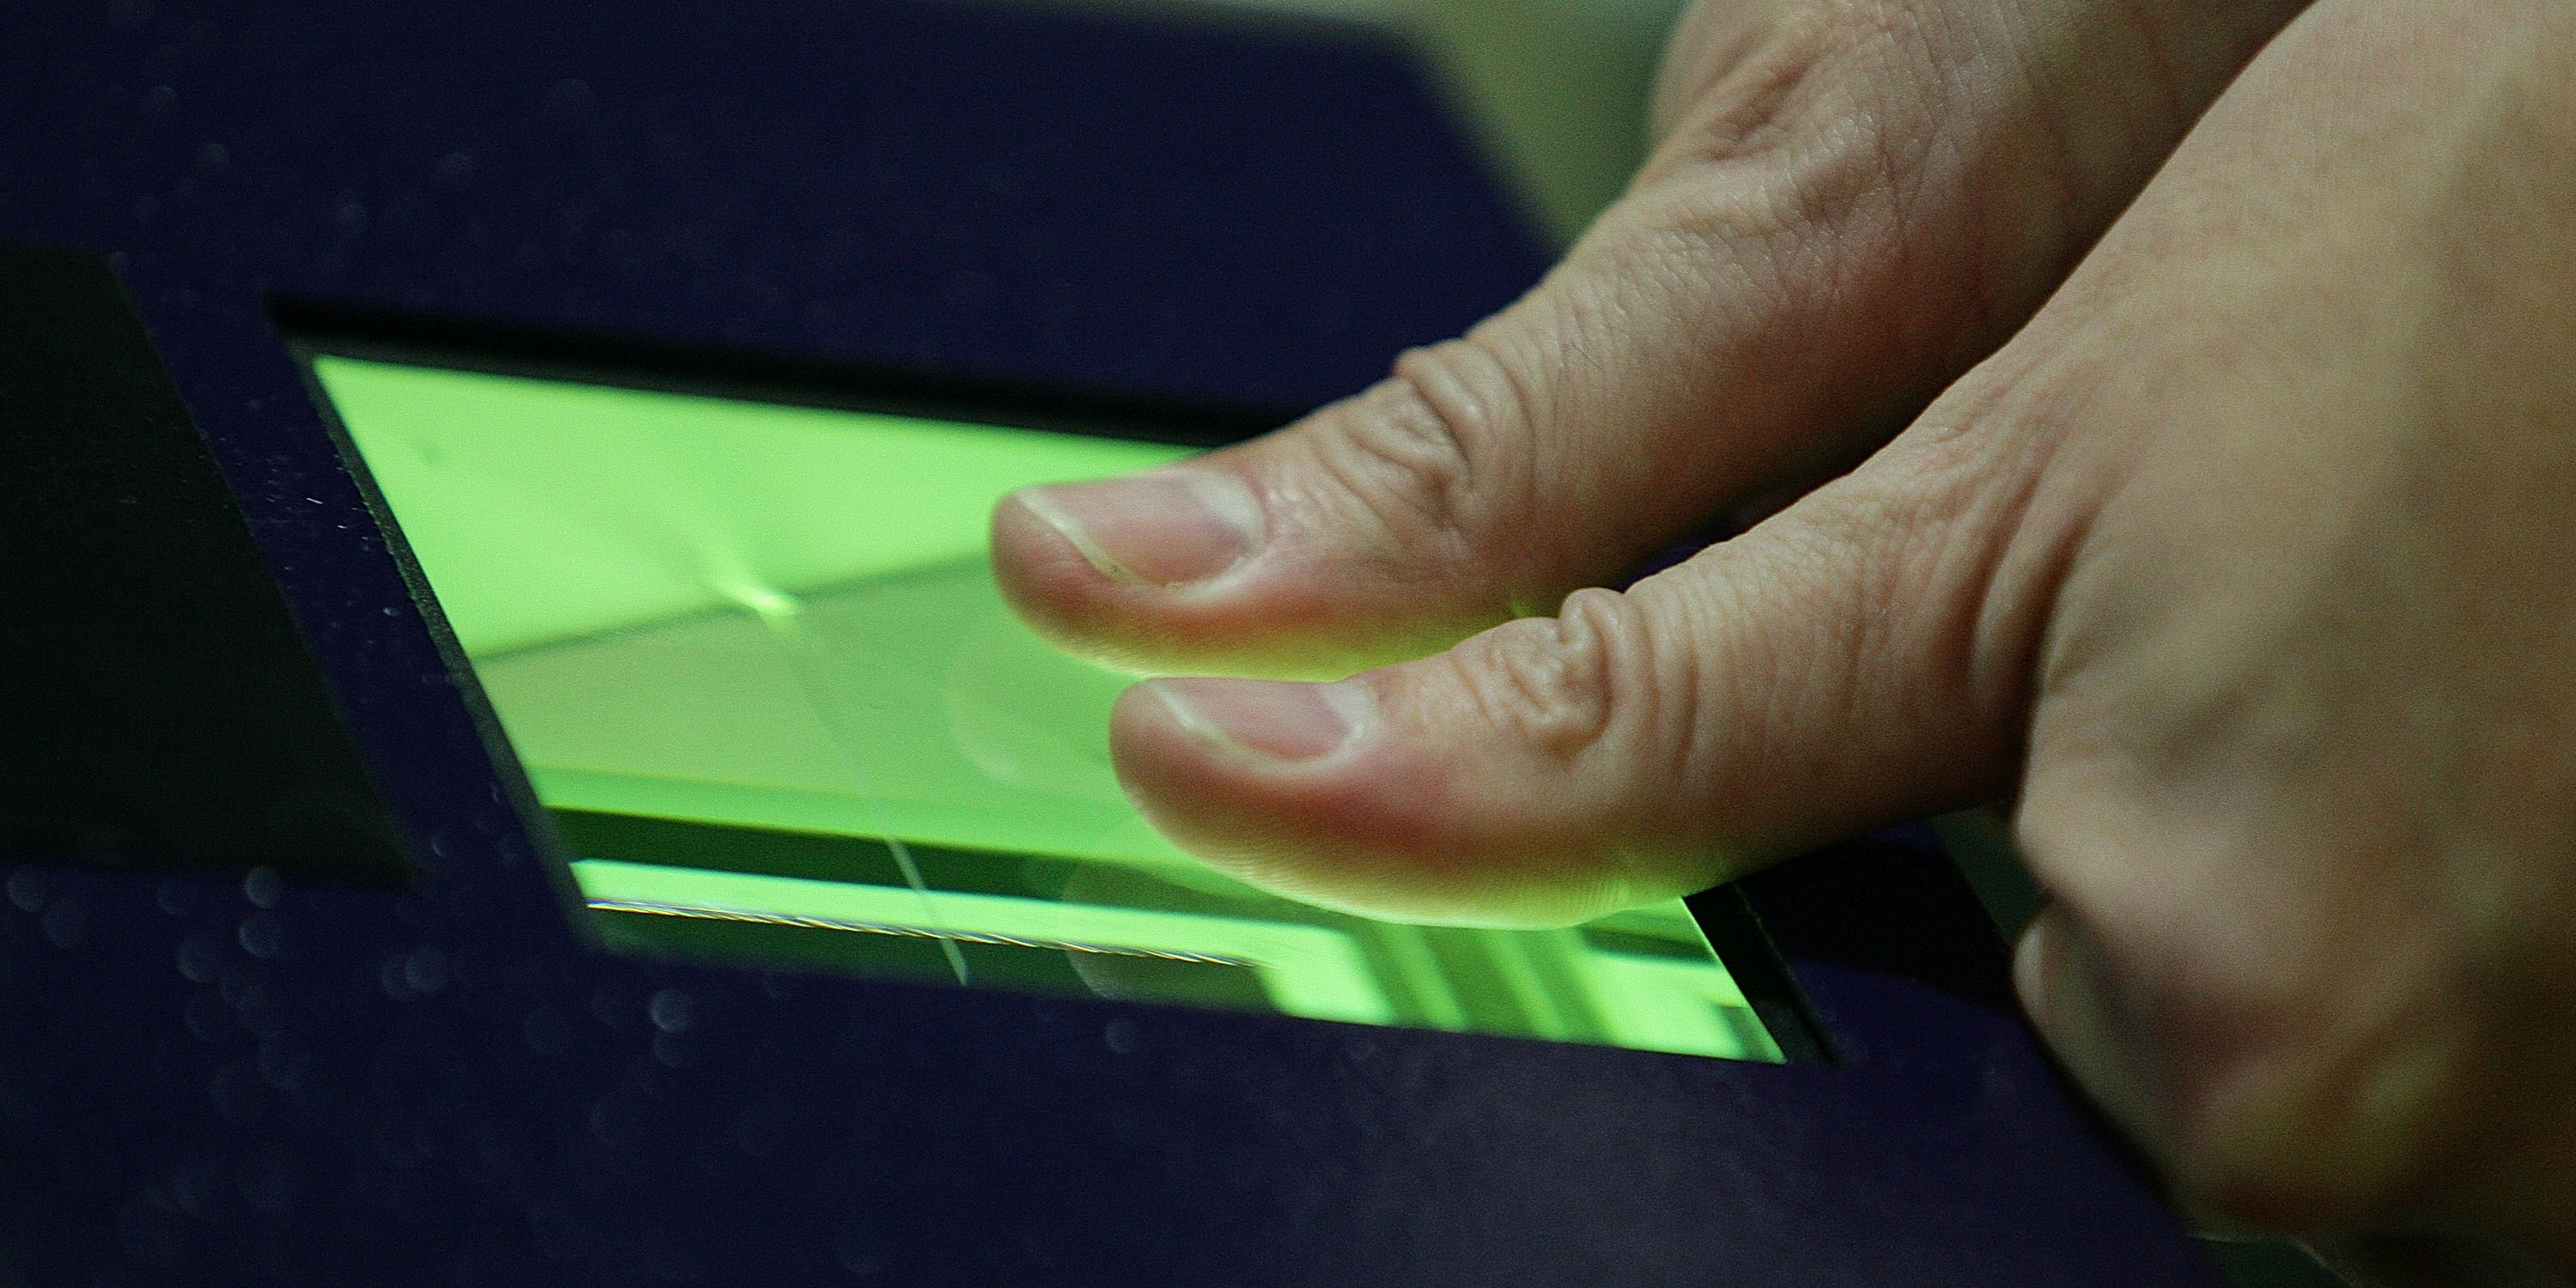 MANCHESTER, ENGLAND - NOVEMBER 16:  Home Office minister Phil Woolas has his fingerprints and photograph scanned as he enrols for the National Identity card at Manchester passport office on November 16, 2009 in Manchester, England. Mr Woolas, regional minister for the North West, is one of the first to enrol for the new biometric identity card which goes live for a trial in Manchester on November 30th.  (Photo by Christopher Furlong/Getty Images)